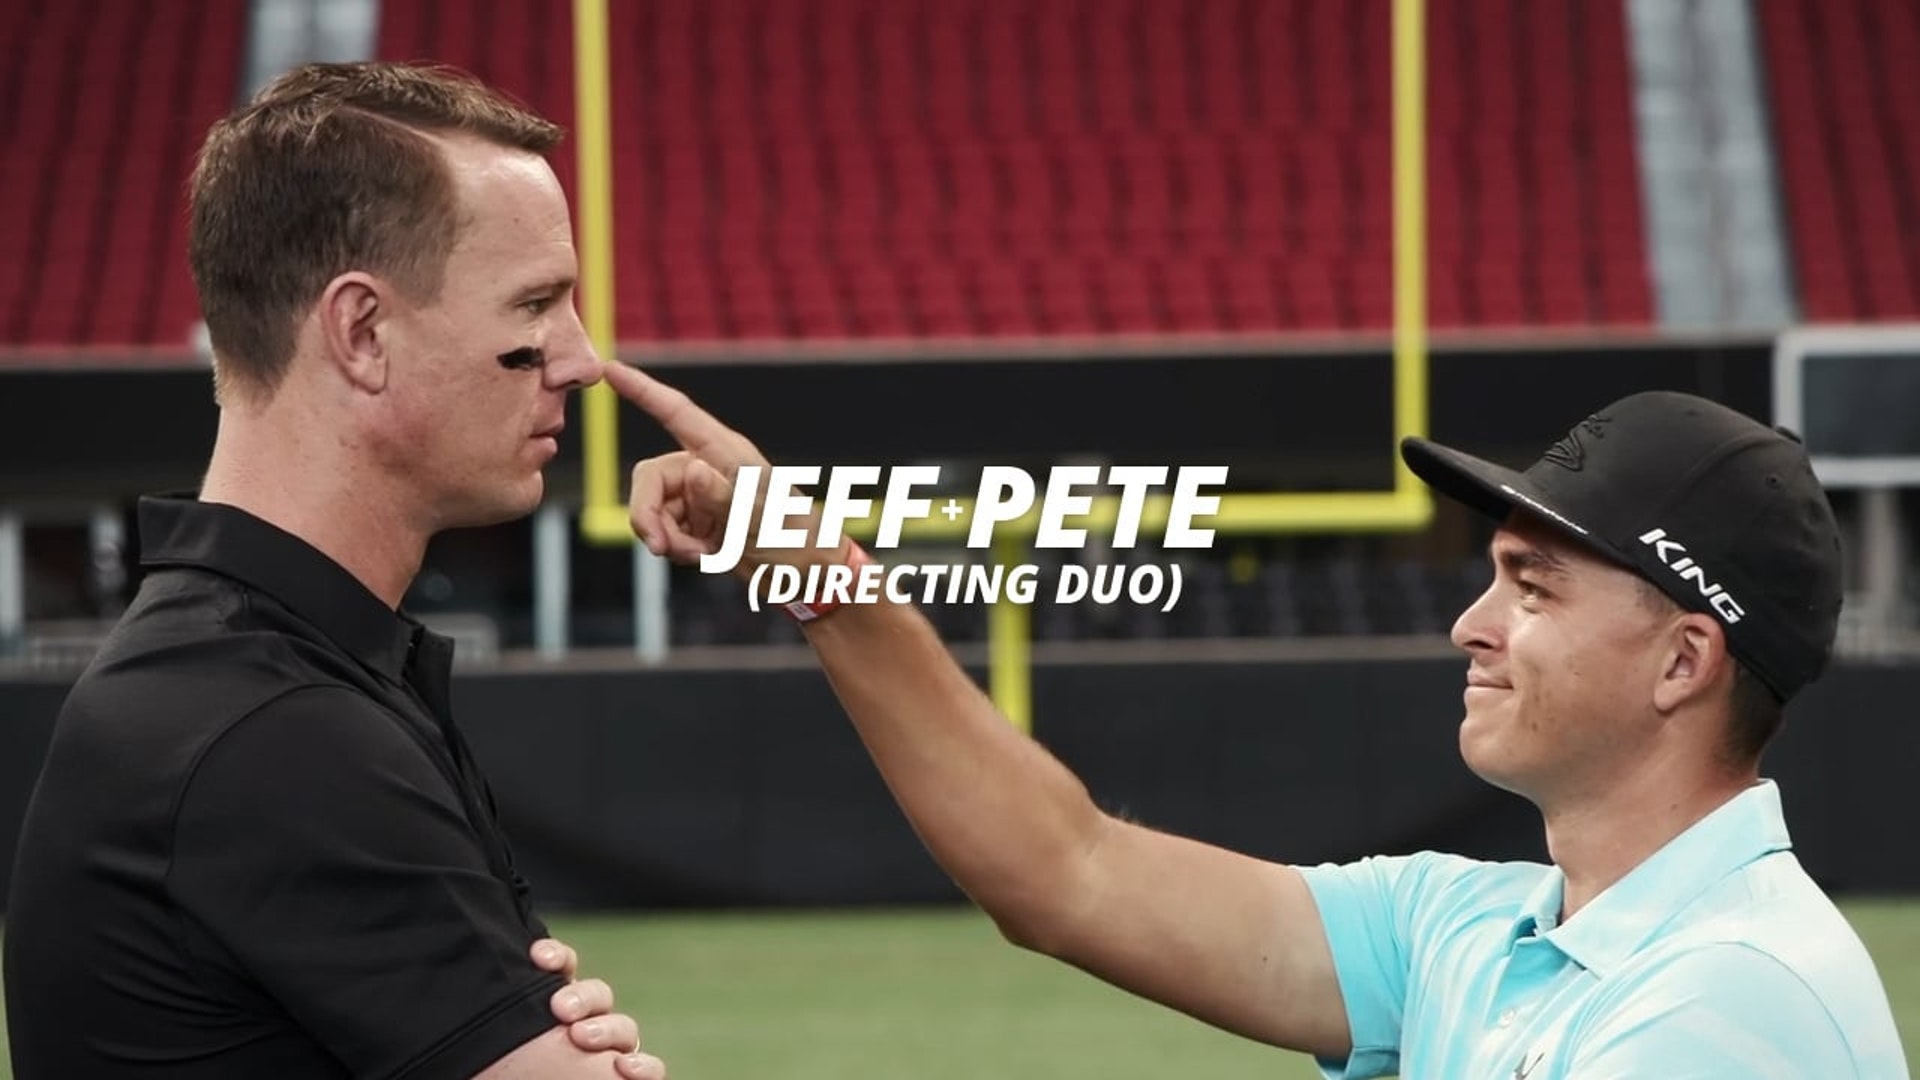 Jeff+Pete: Directing Duo